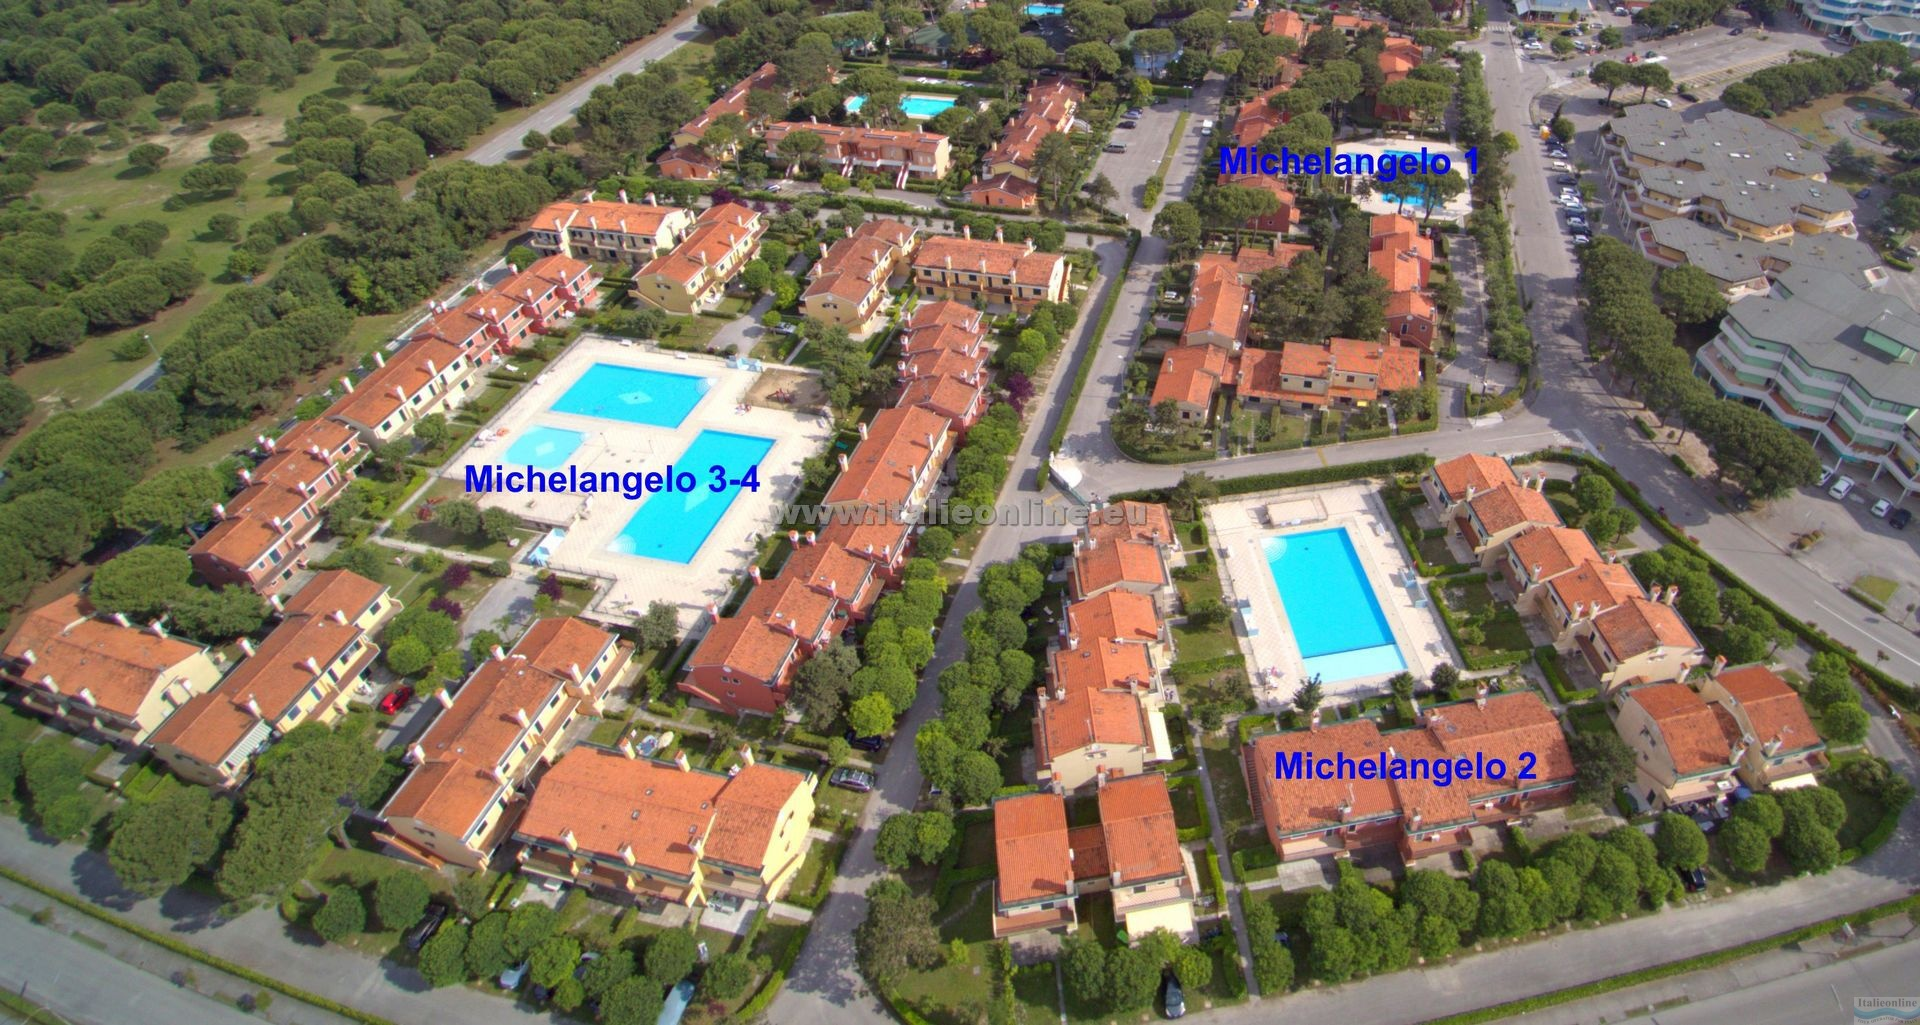 Villaggio Michelangelo